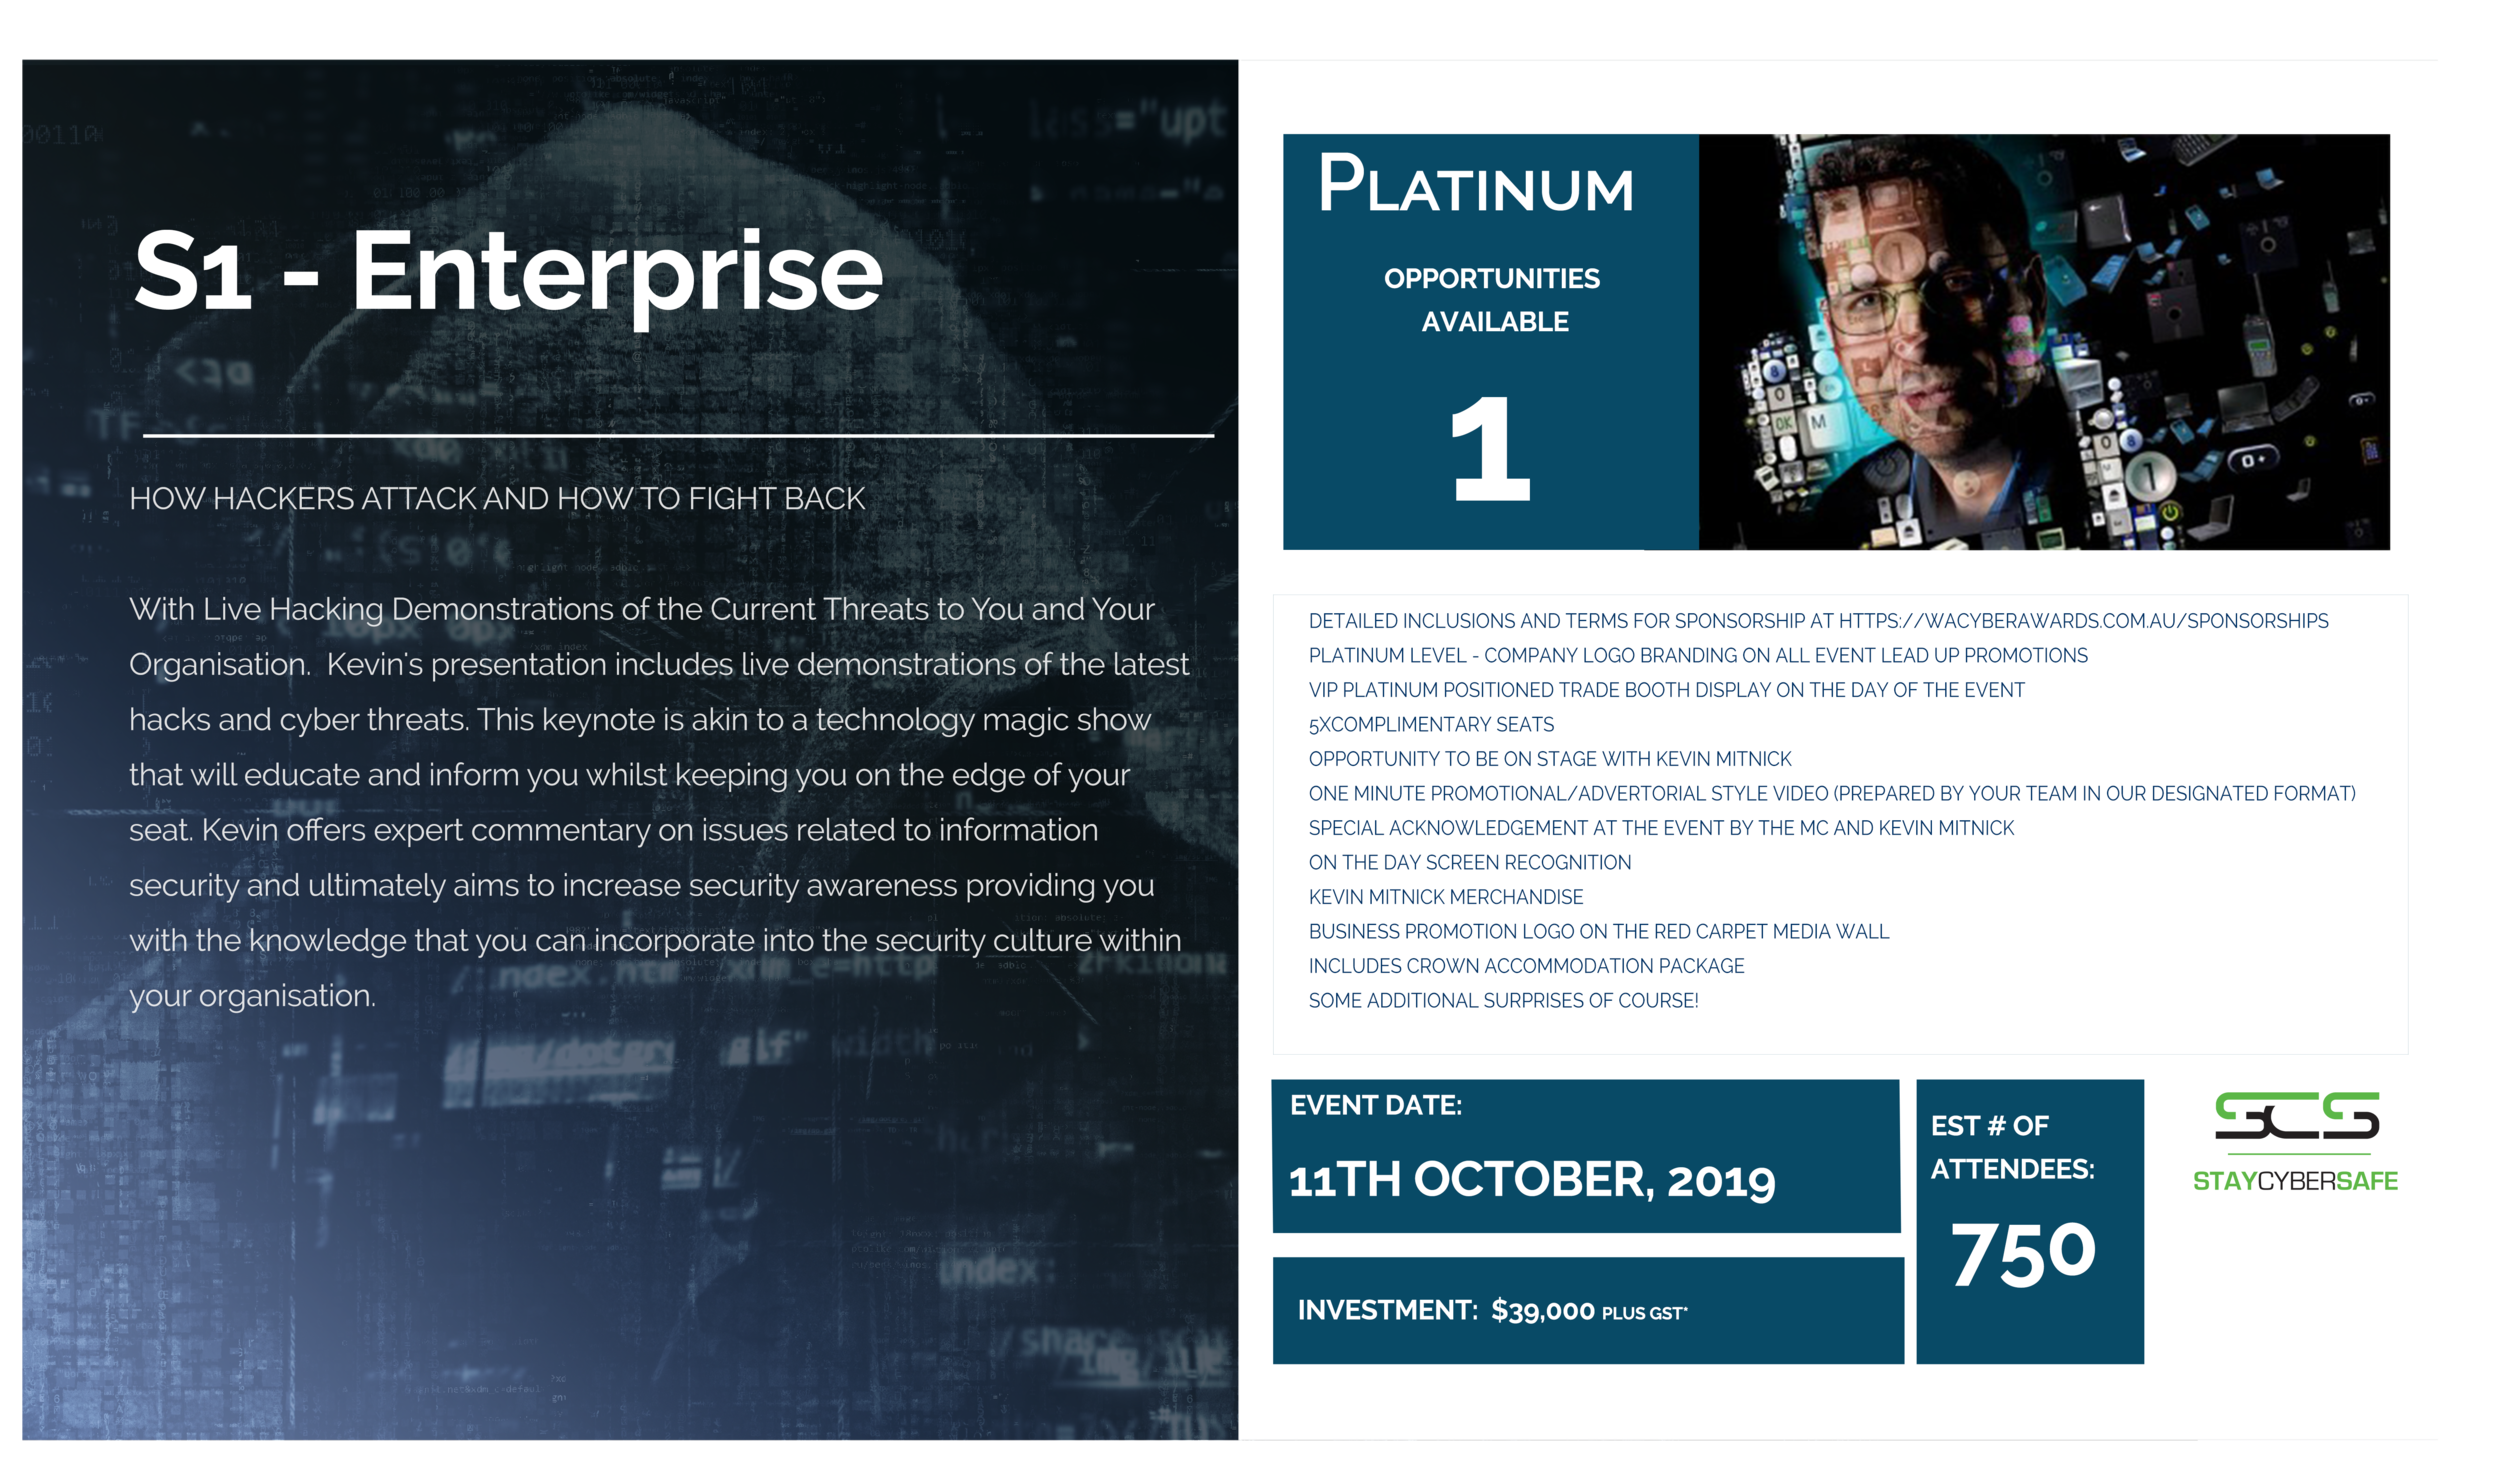 S1 - Enterprise - This keynote is akin to a technology magic show that will educate and inform you whilst keeping you on the edge of your seats.Full description and of list sponsorship levels are available here.